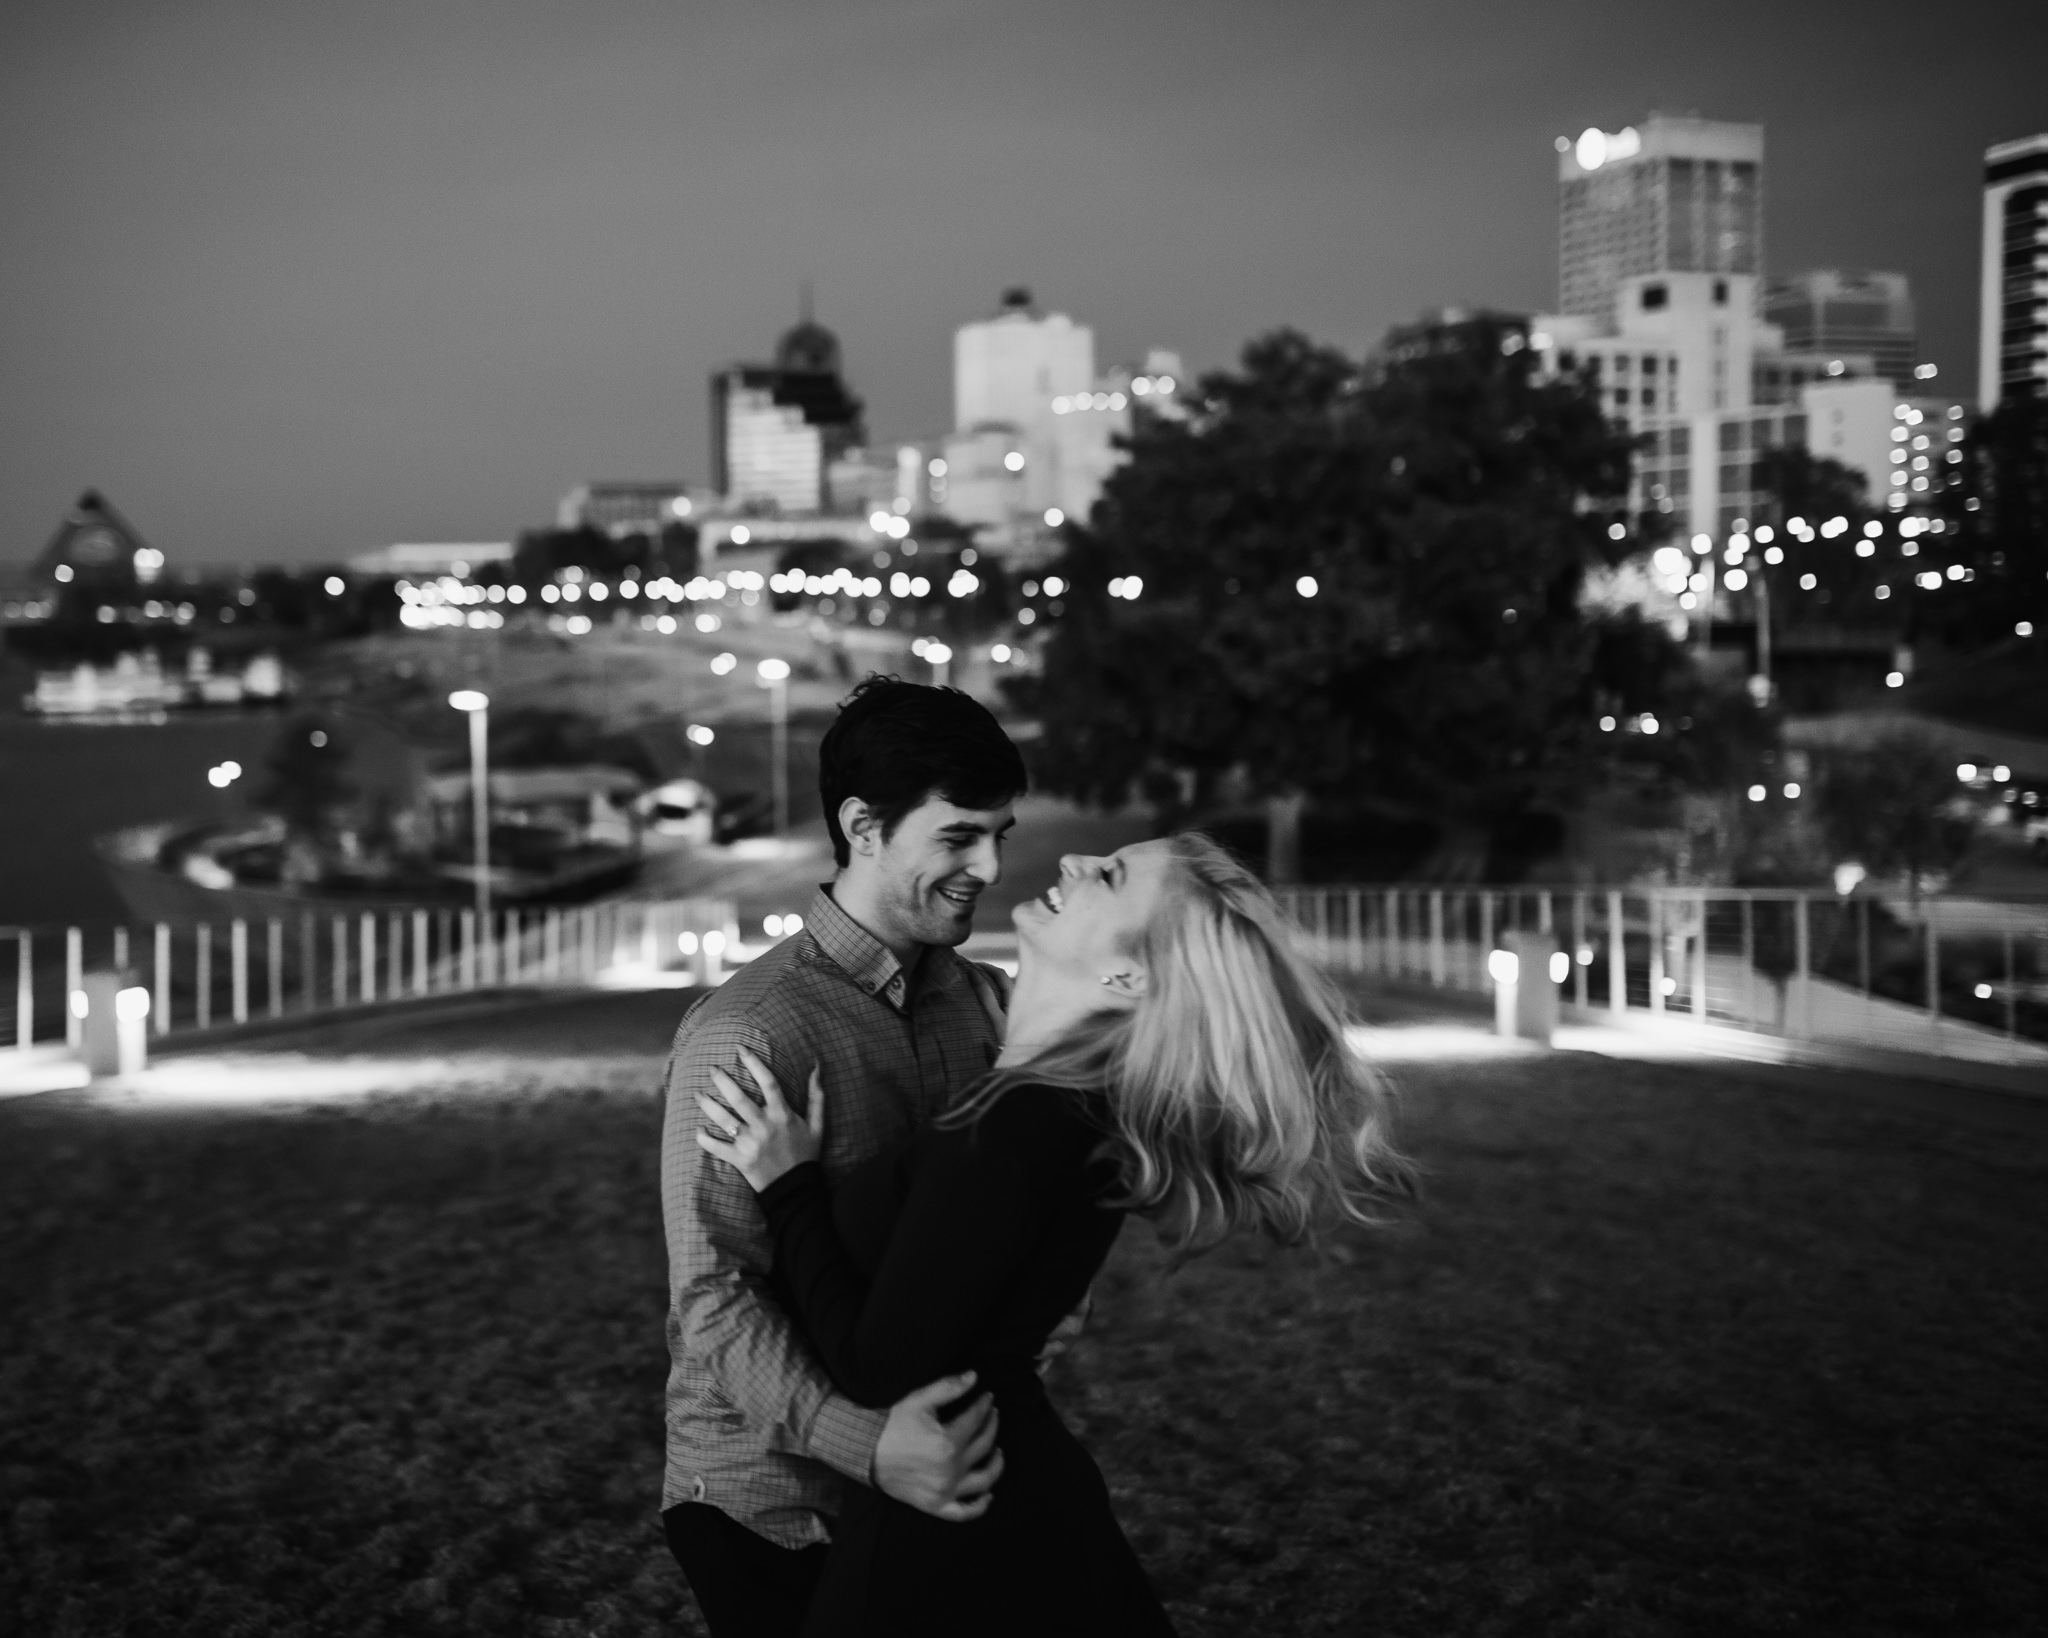 memphis-wedding-photographer-cassie-cook-photography-cafe-keough-engagement-photoshoot-coffee-engagement-62.jpg